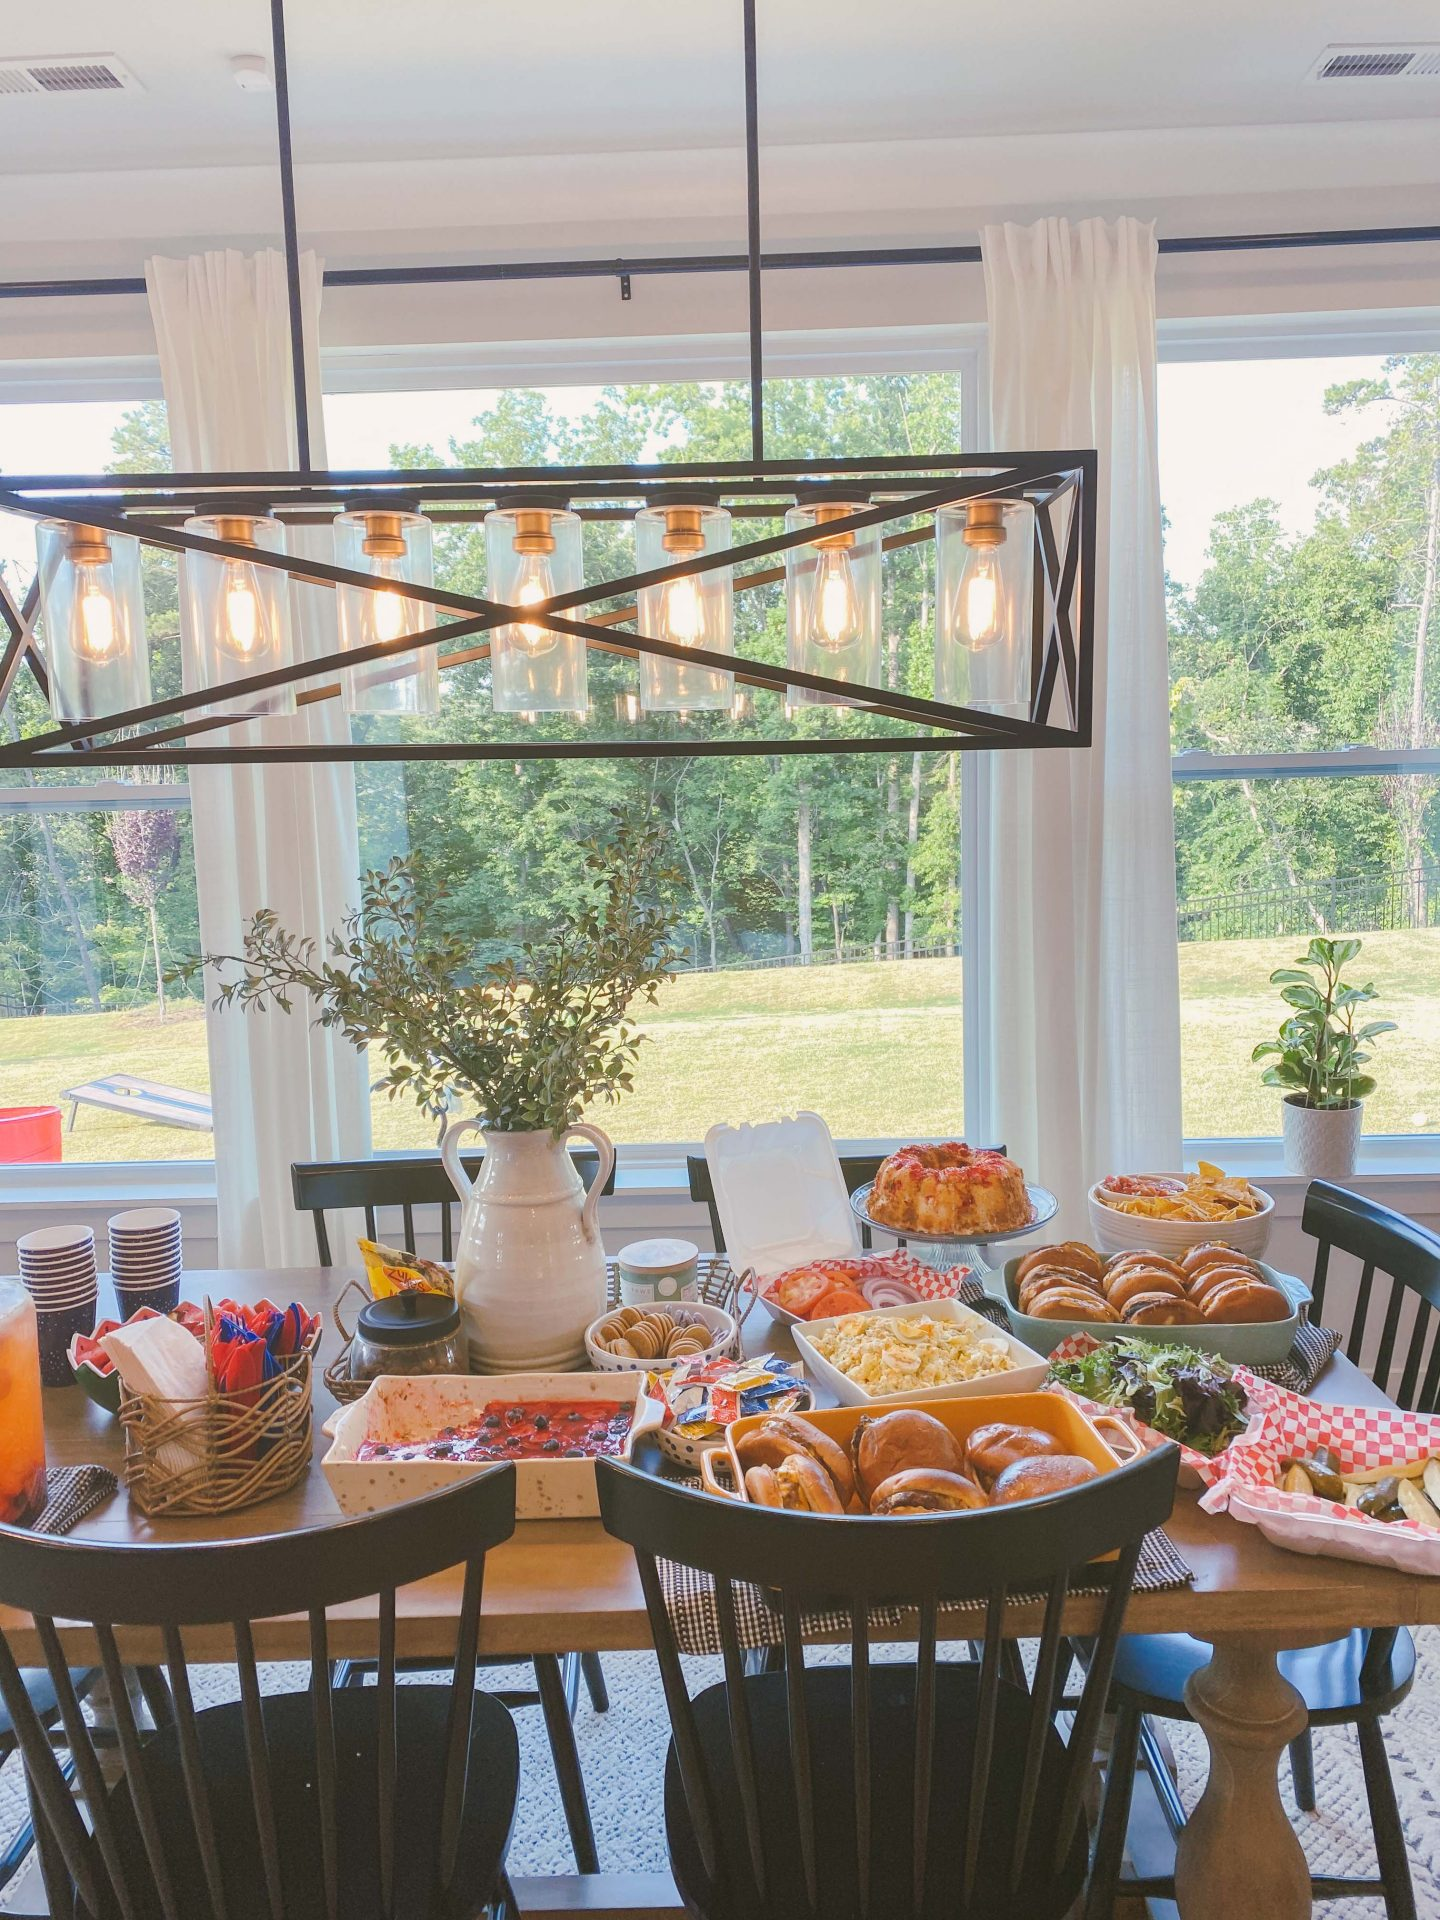 4th of July party, 4th of july spread